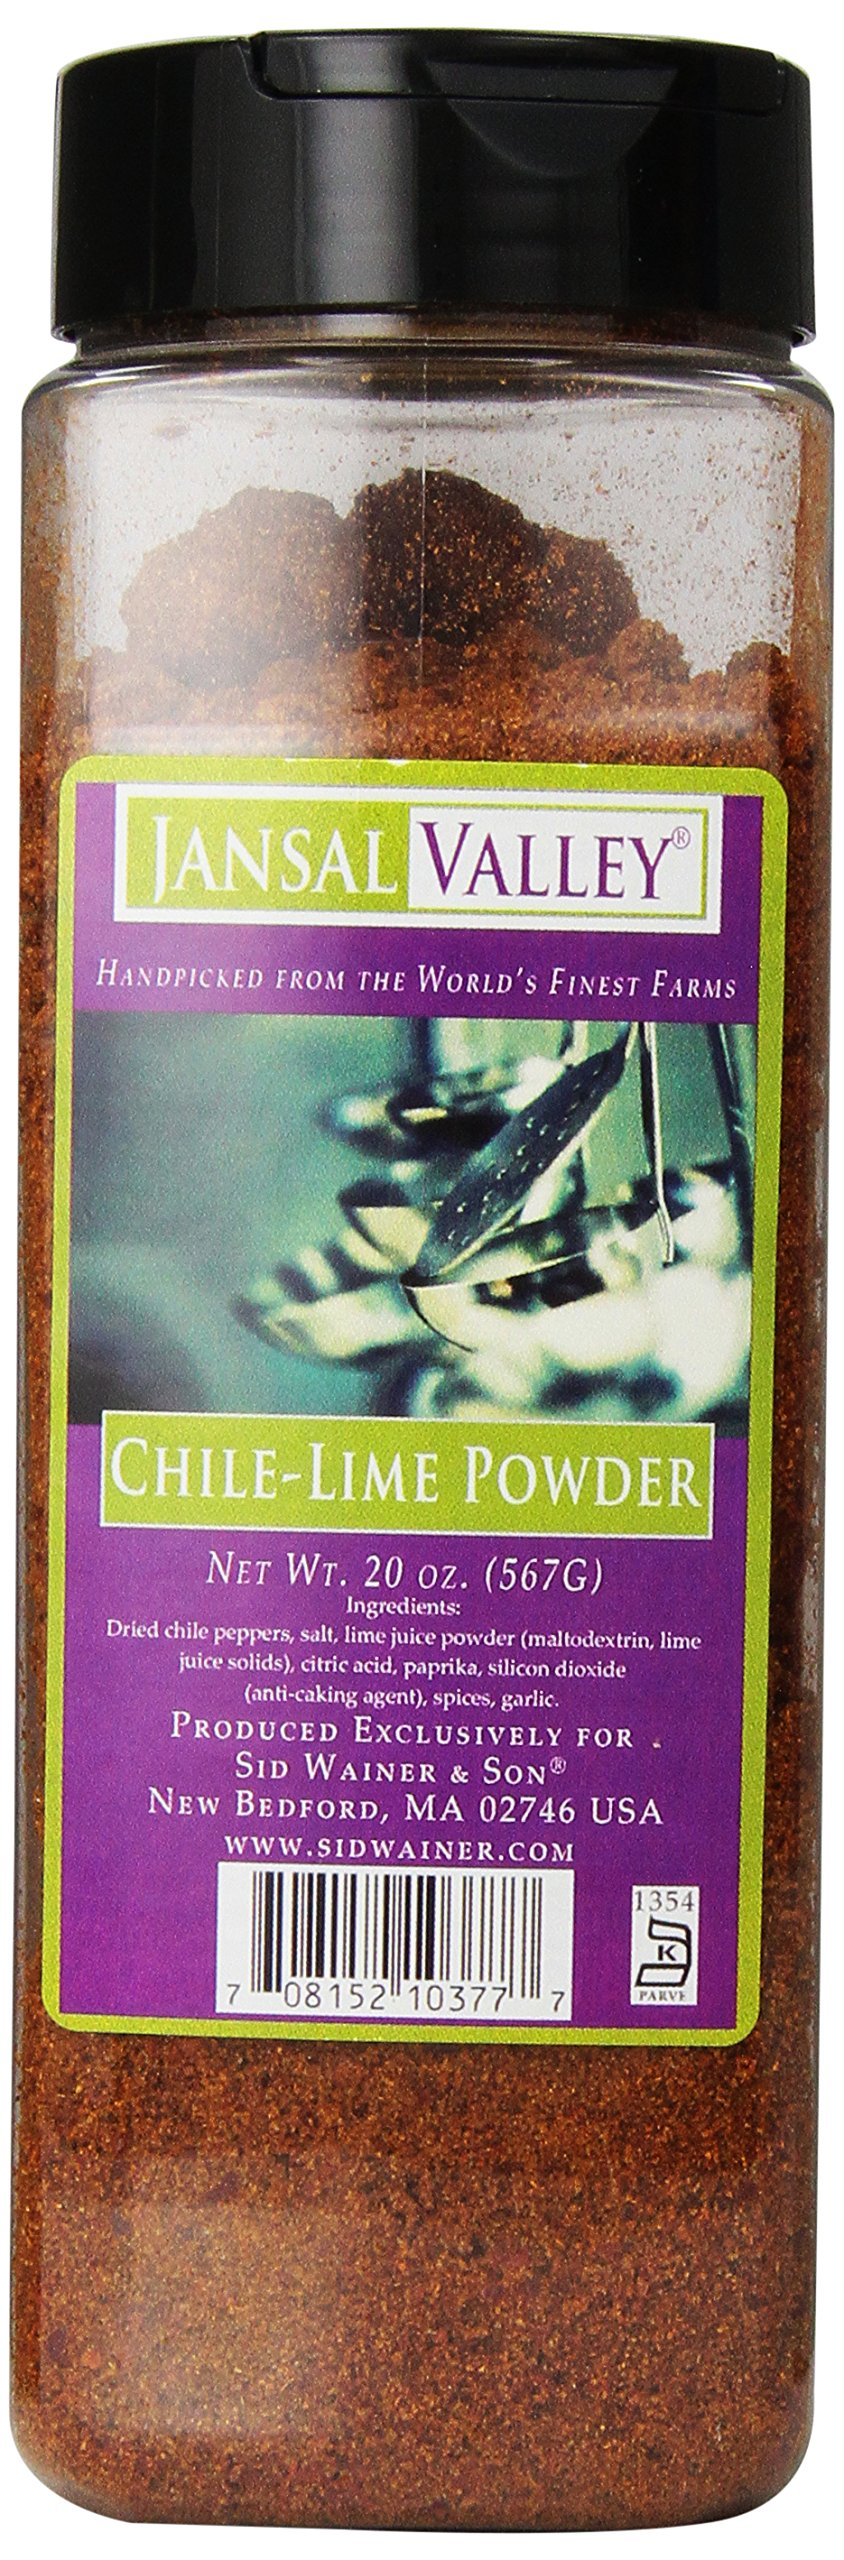 Jansal Valley Chile Lime Powder, 20 Ounce